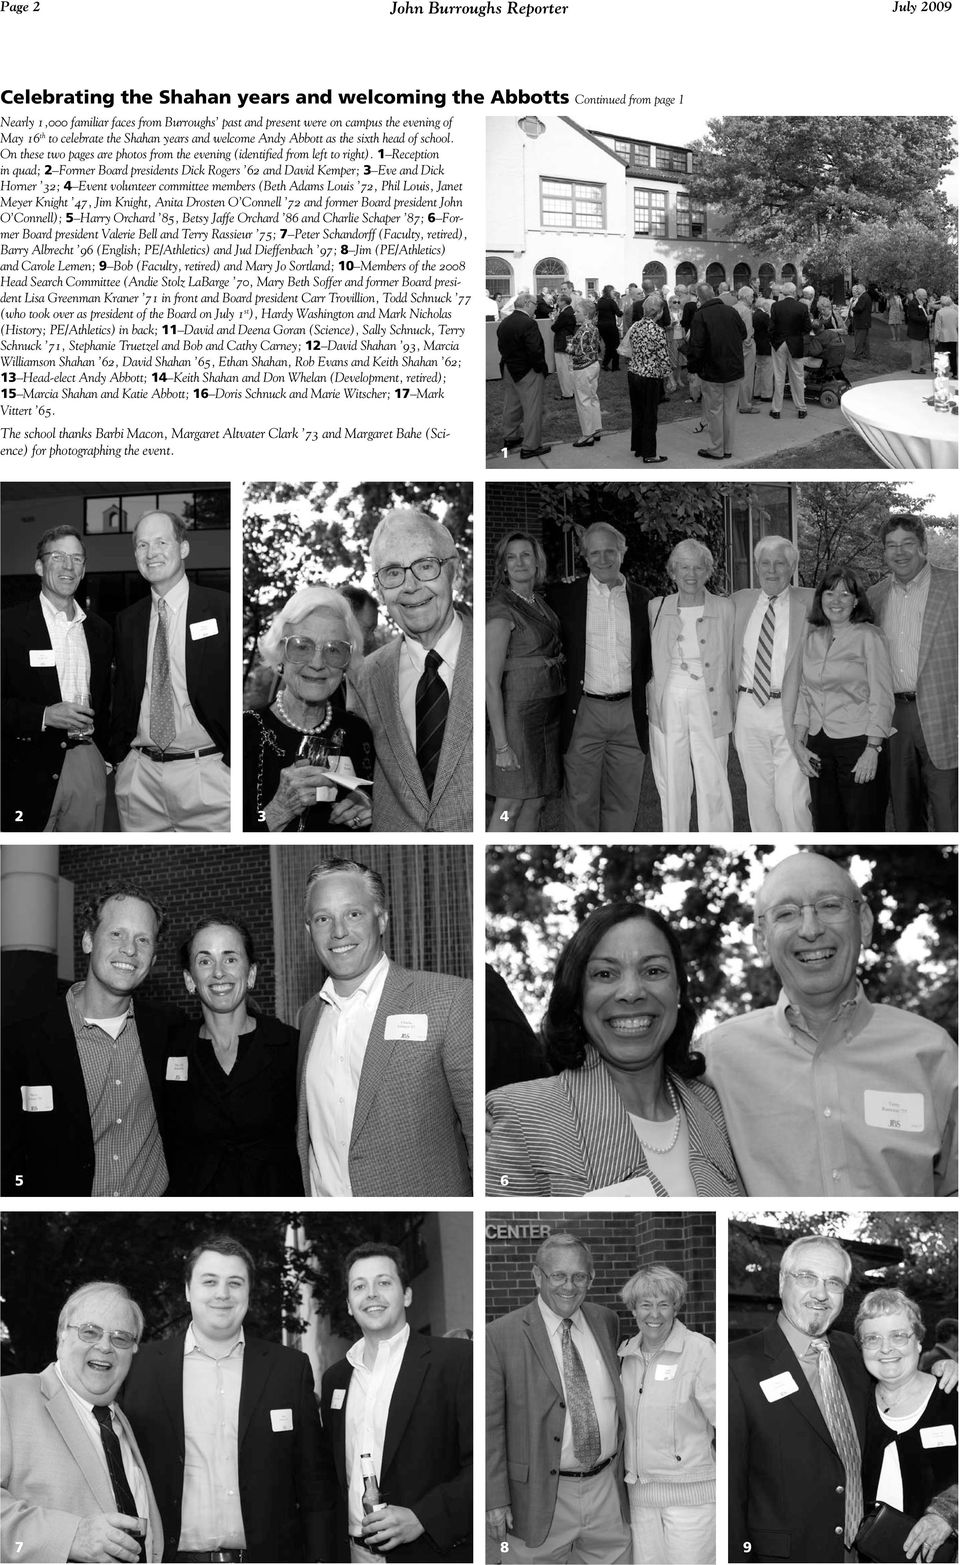 1 Reception in quad; 2 Former Board presidents Dick Rogers 62 and David Kemper; 3 Eve and Dick Horner 32; 4 Event volunteer committee members (Beth Adams Louis 72, Phil Louis, Janet Meyer Knight 47,